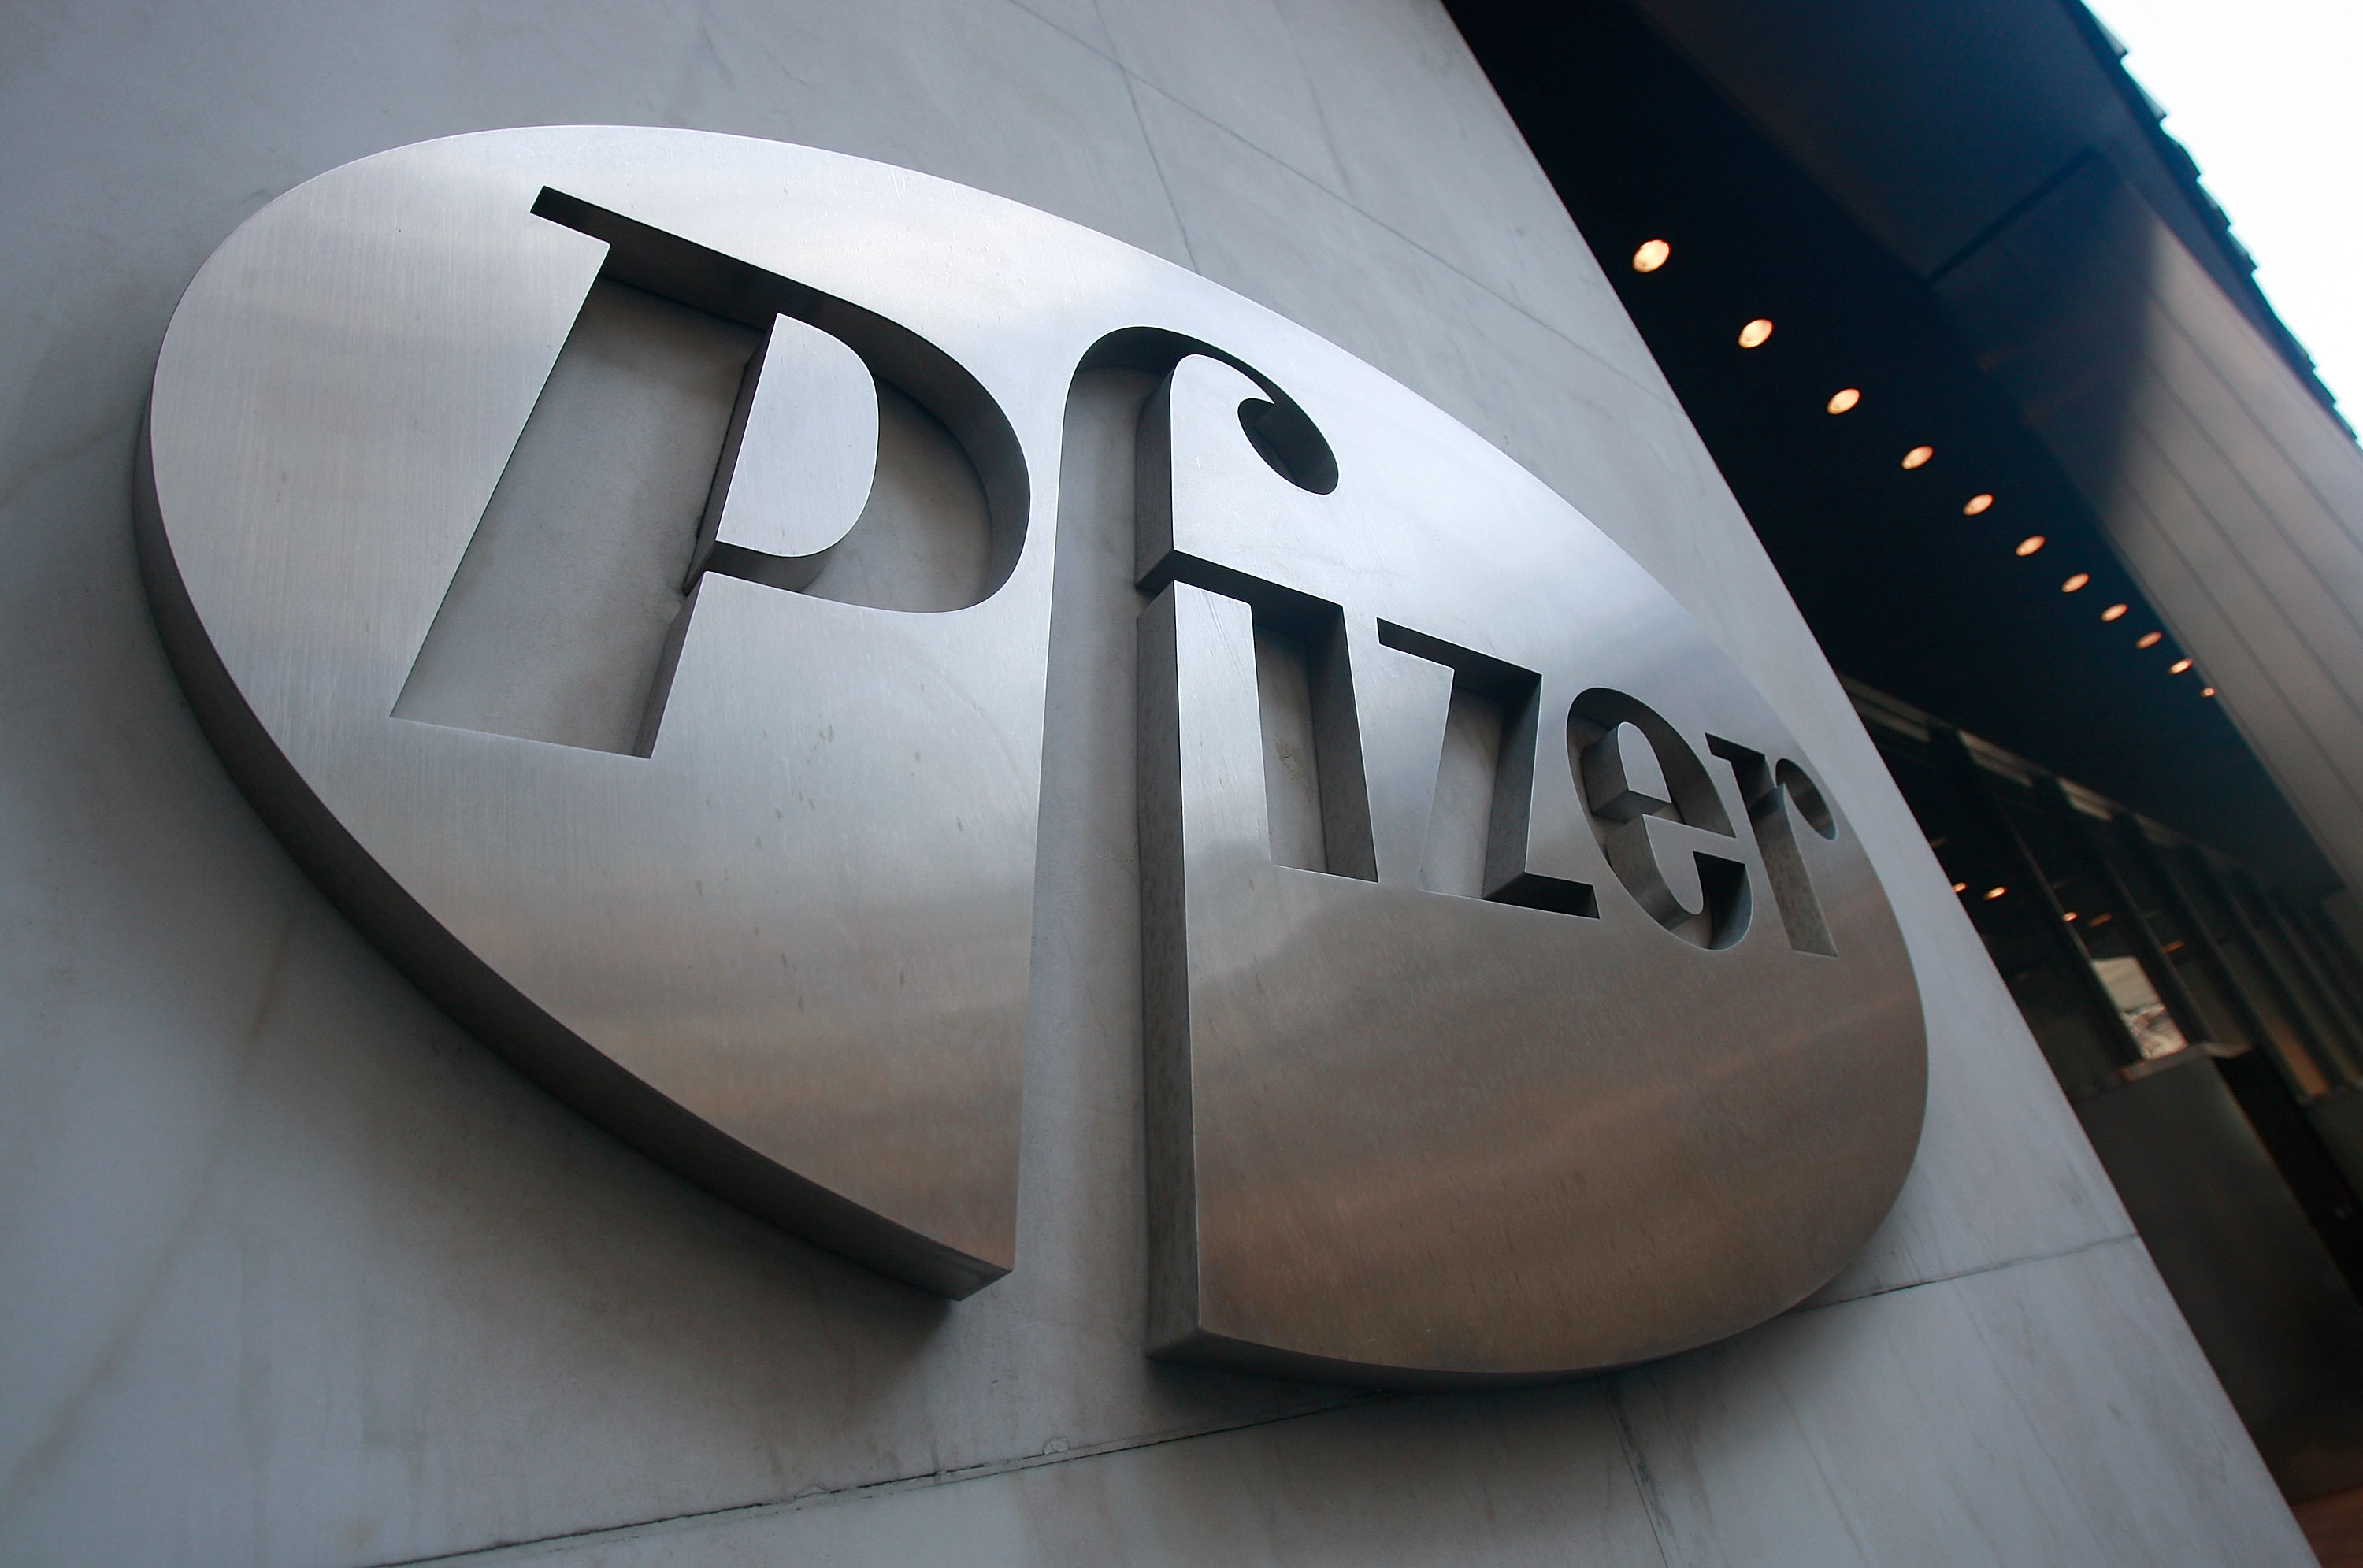 A Pfizer sign hangs on the outside of their headquarters in New York City.